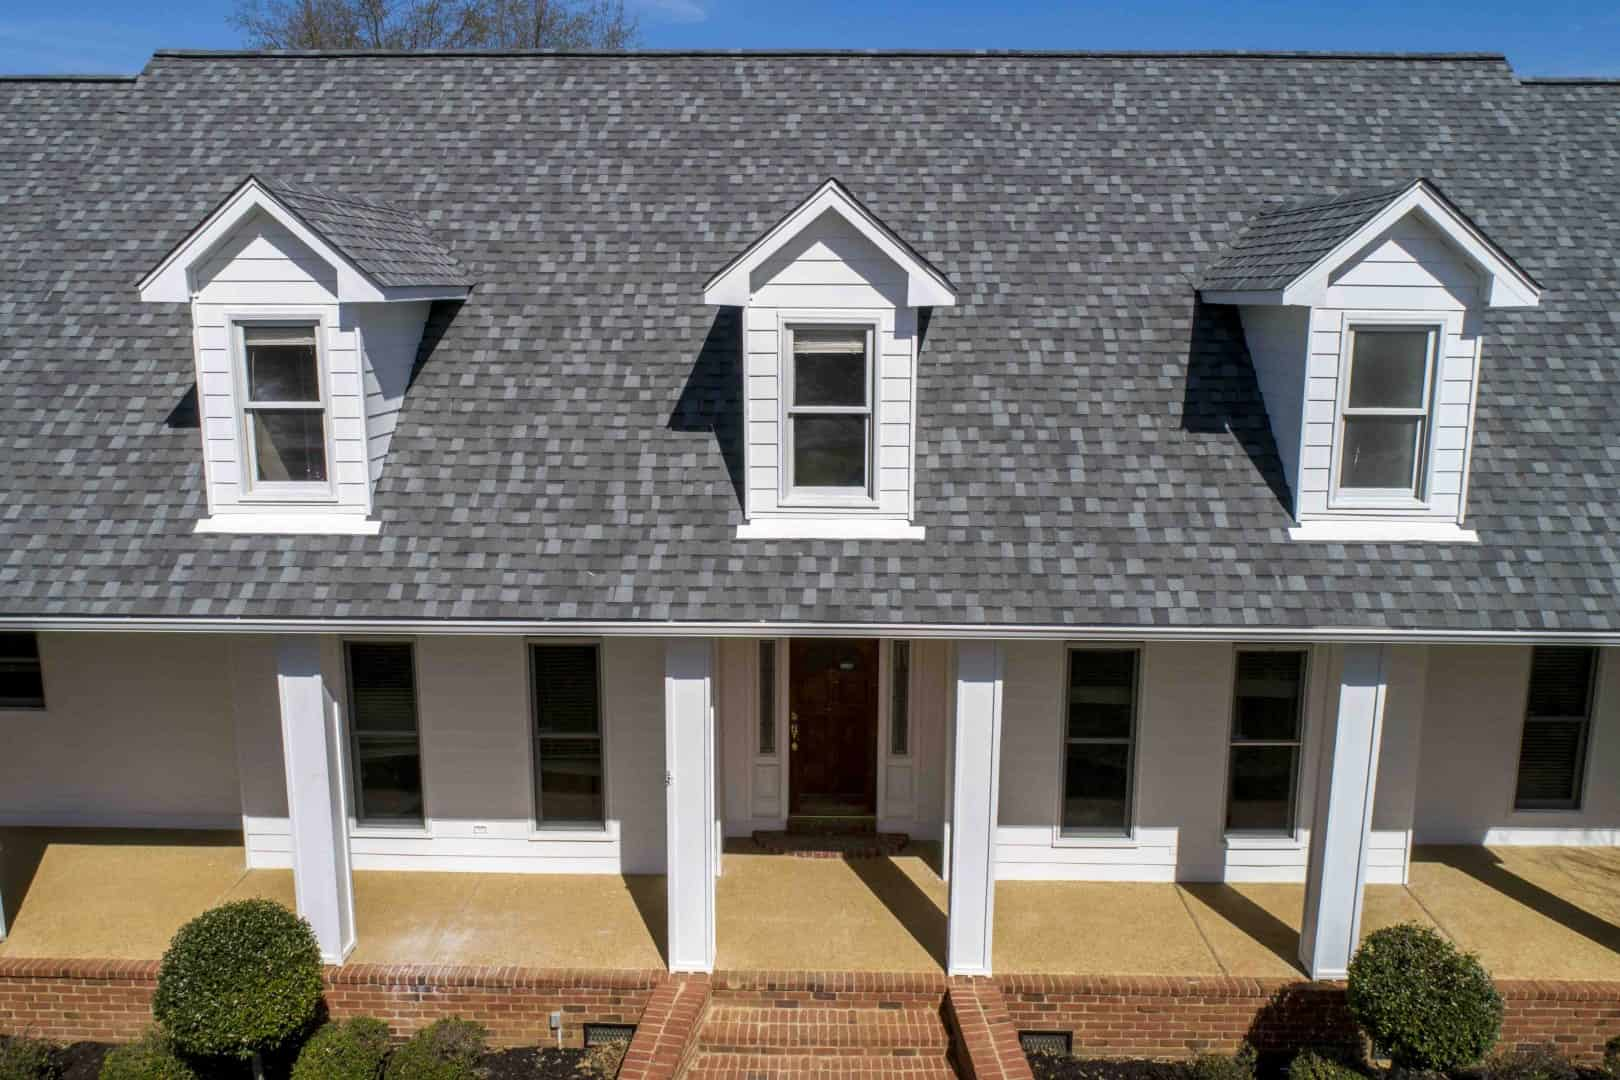 Pristine Appearance. Protected Appeal. Pinnacle® Pristine architectural shingles provide stunning color that lasts.